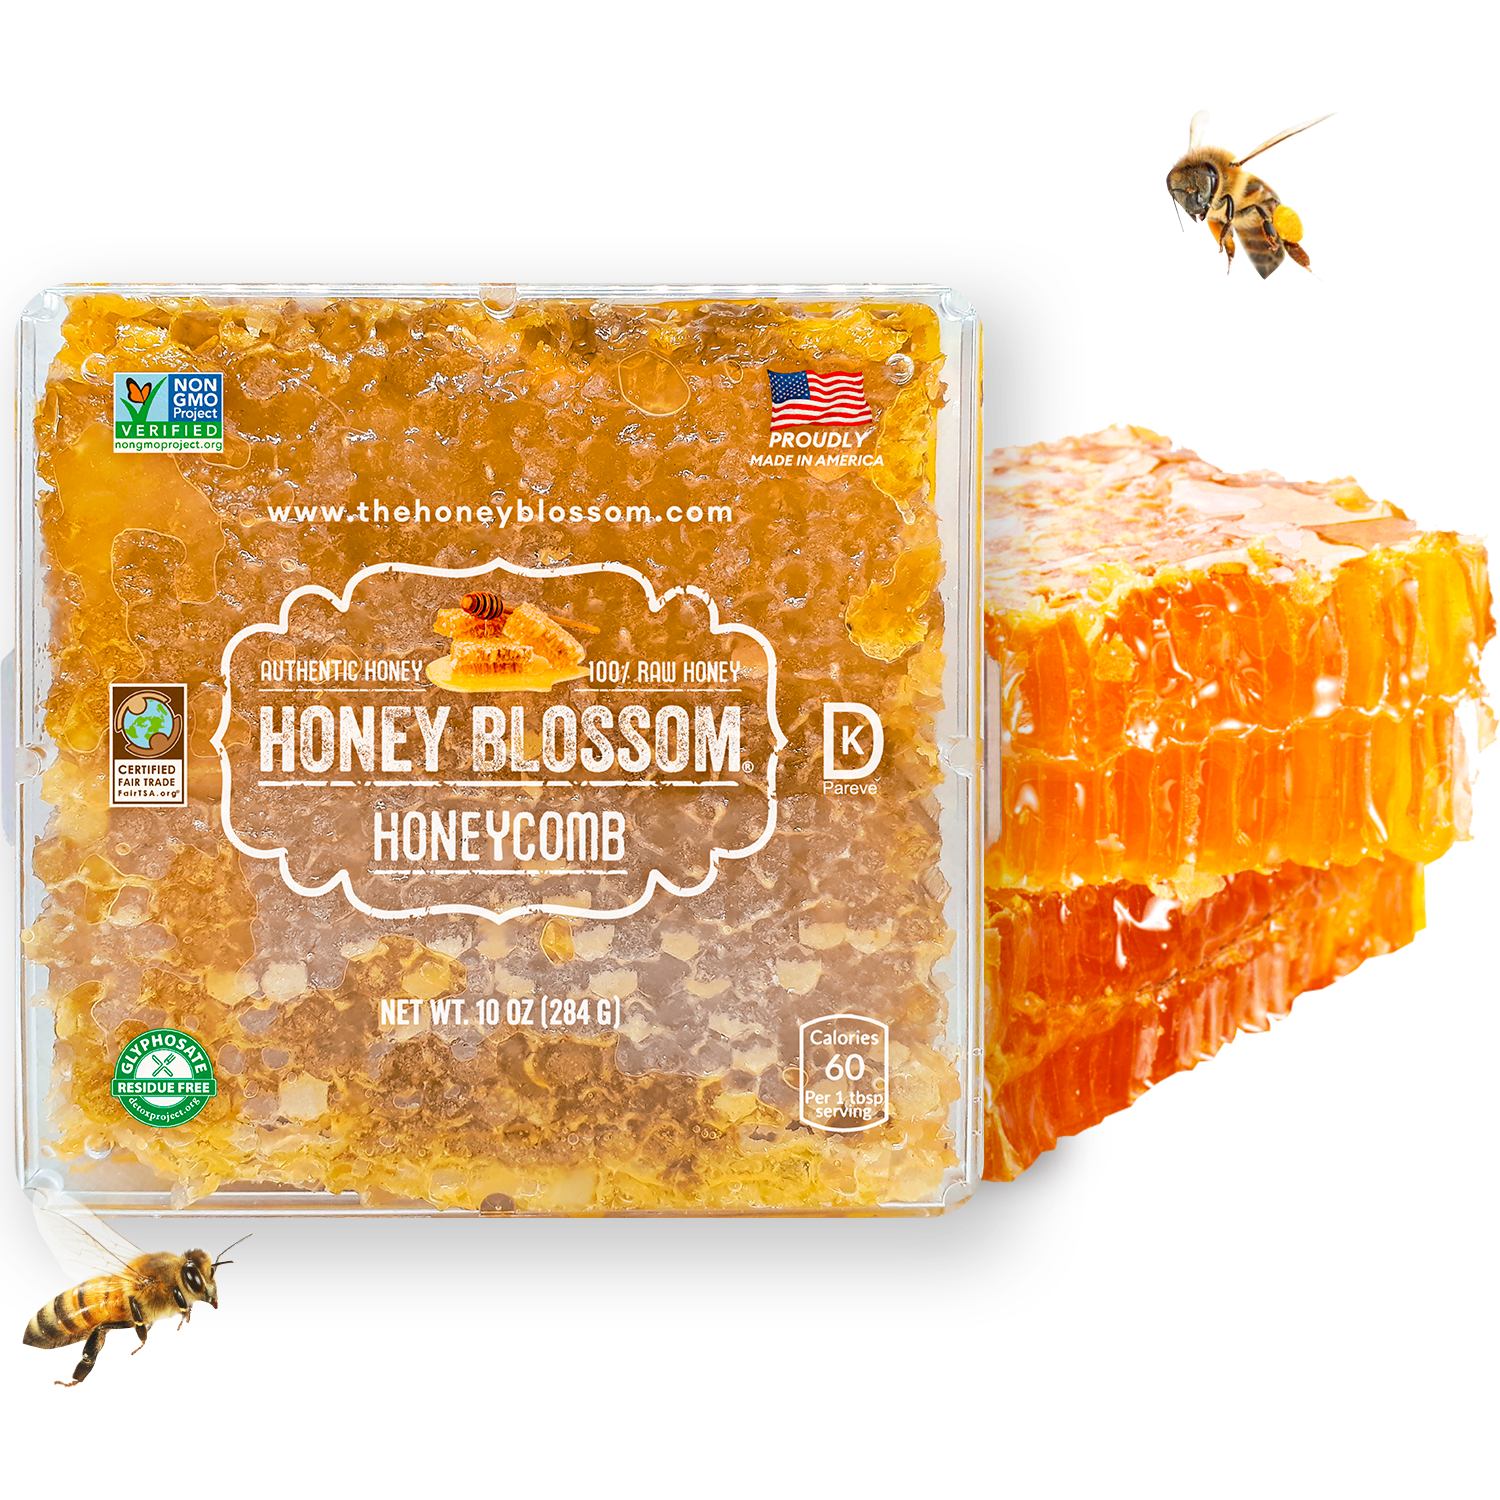 Image of Honey Blossom honeycomb box standing upright, with 2 combs behind it and honey falling from them. With several bees flying around it